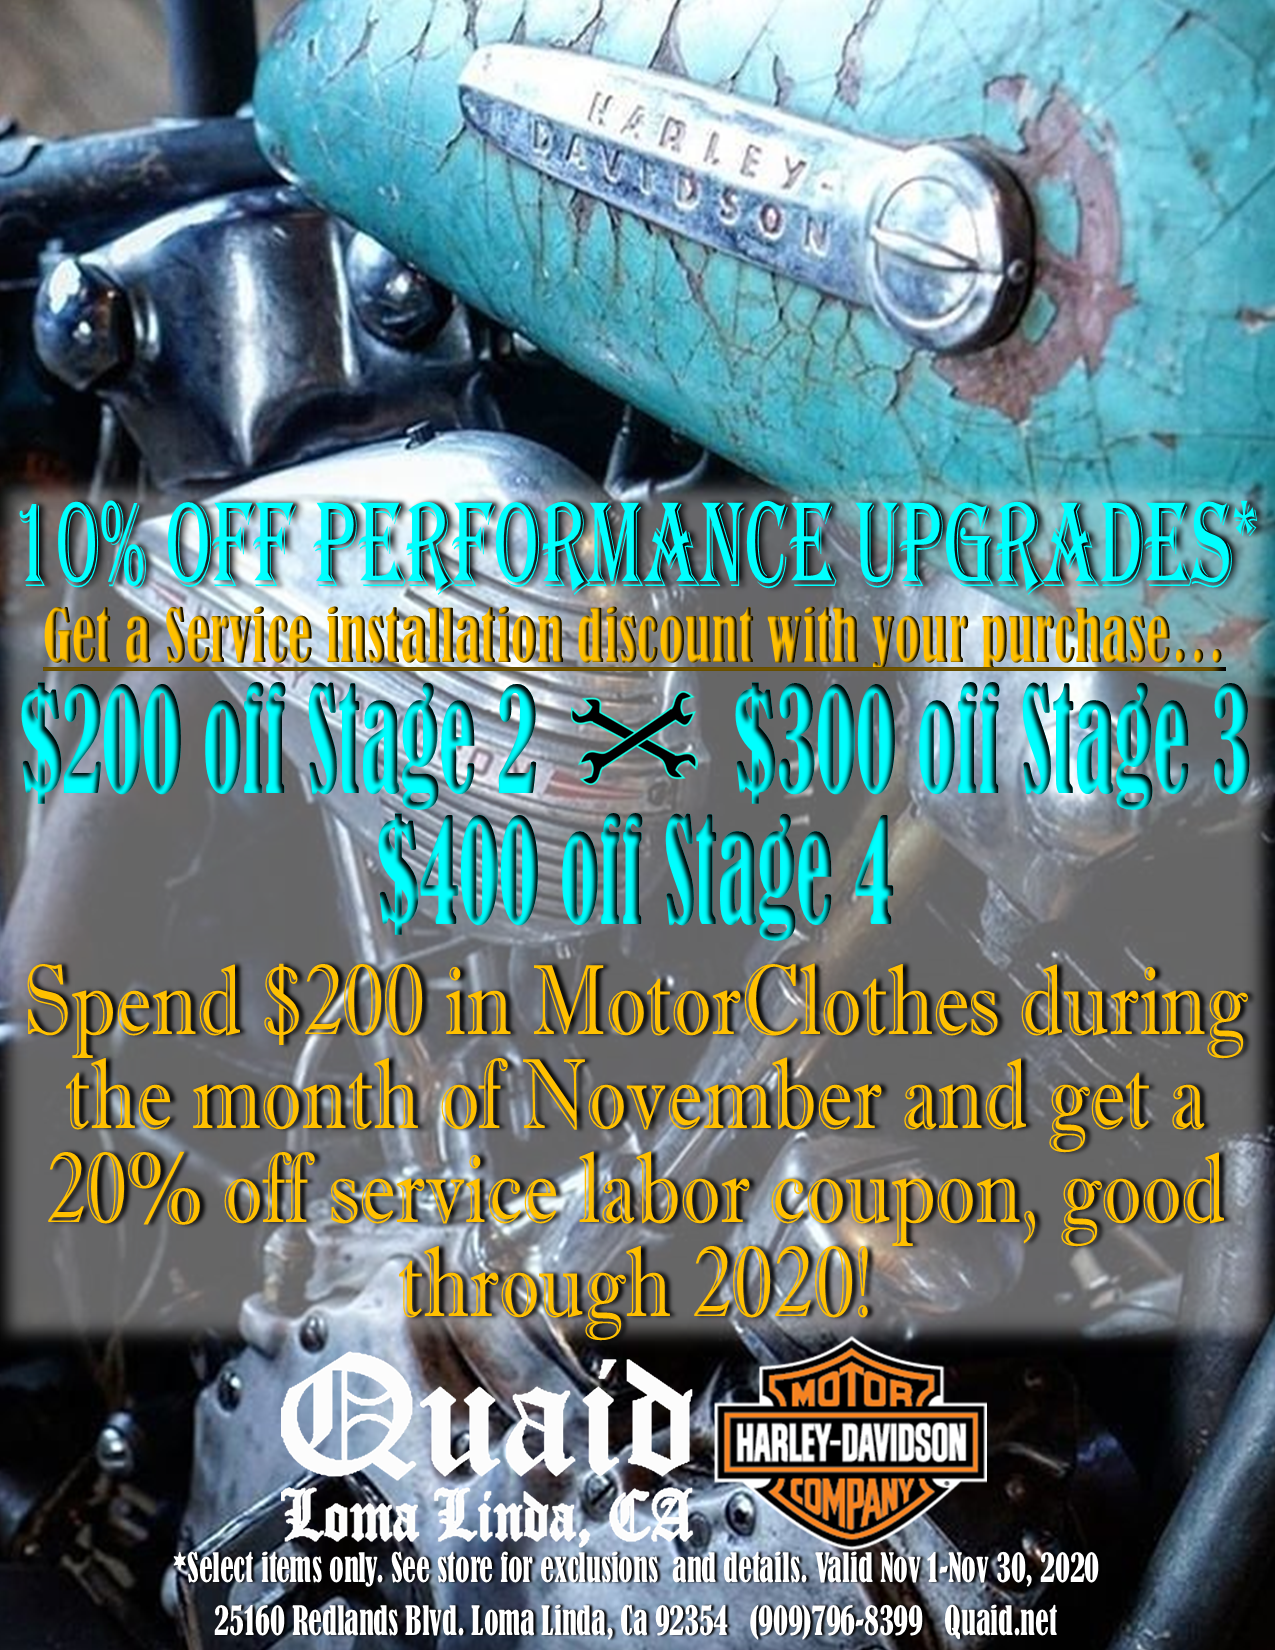 Quaid Harley-Davidson specials for November. 10% off performance upgrades and service labor discounts.